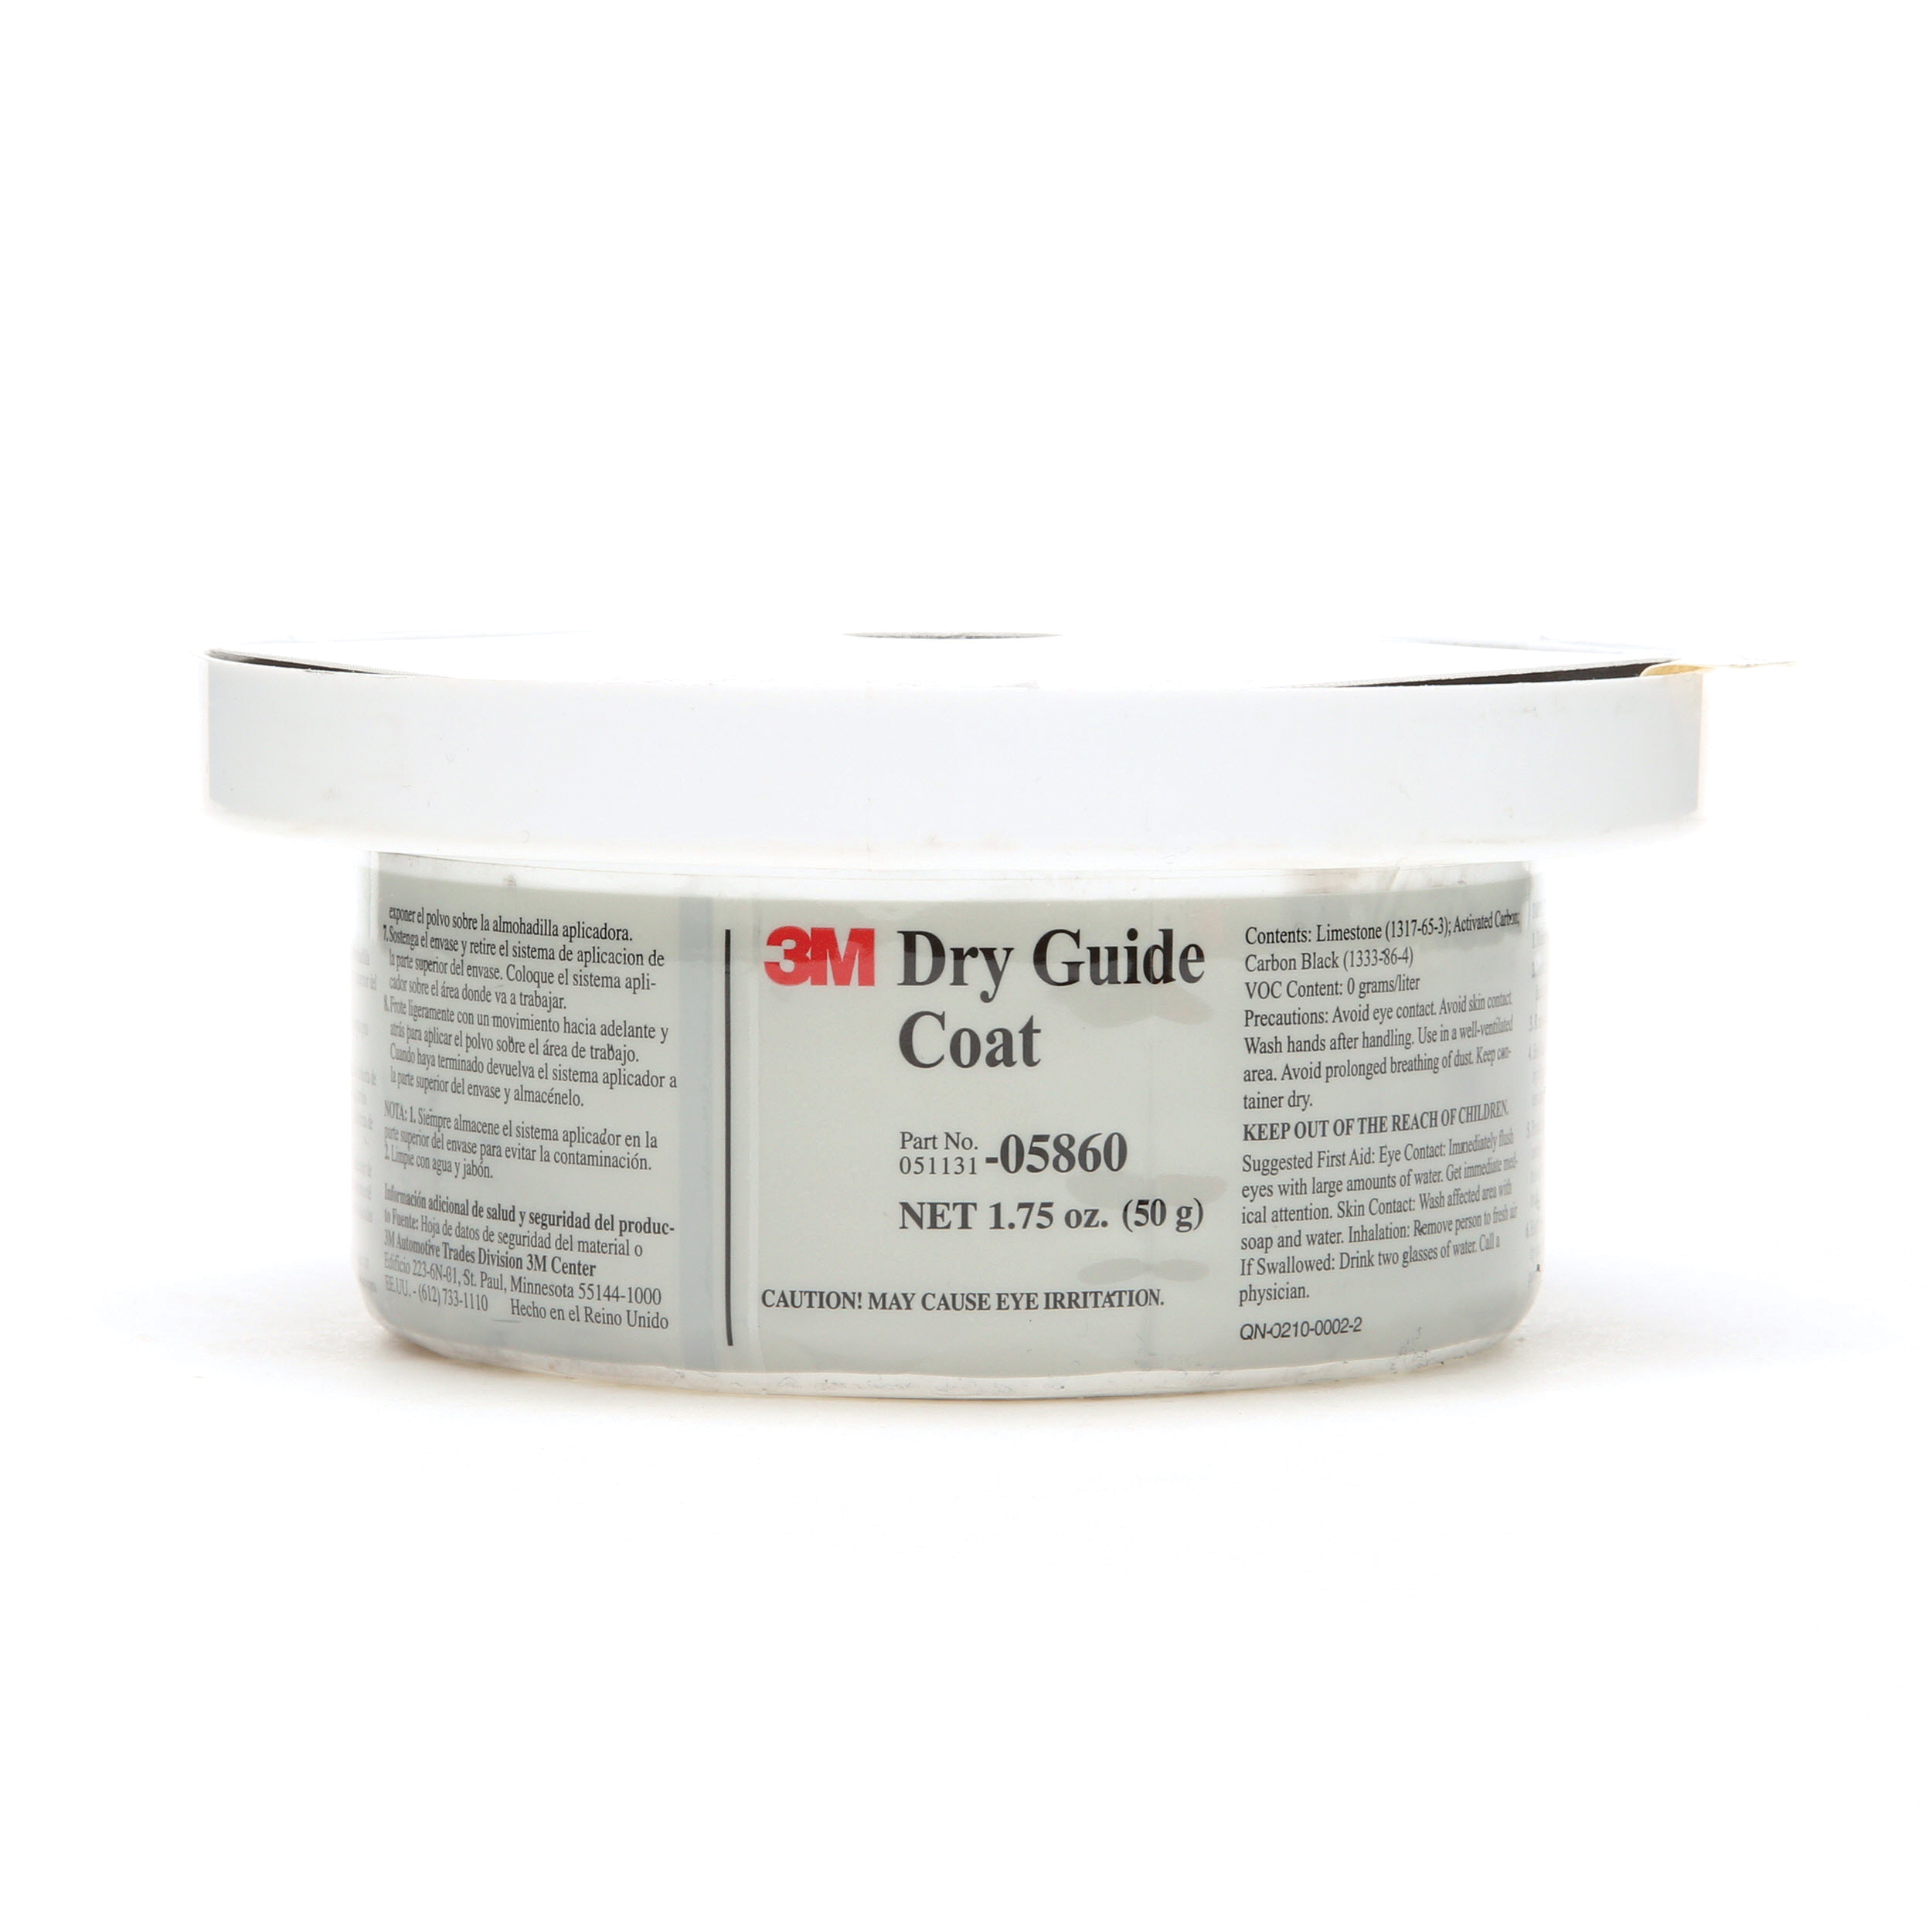 3M™ 051131-05860 Dry Guide Coat, 50 g Container, Powder Form, Dark Gray